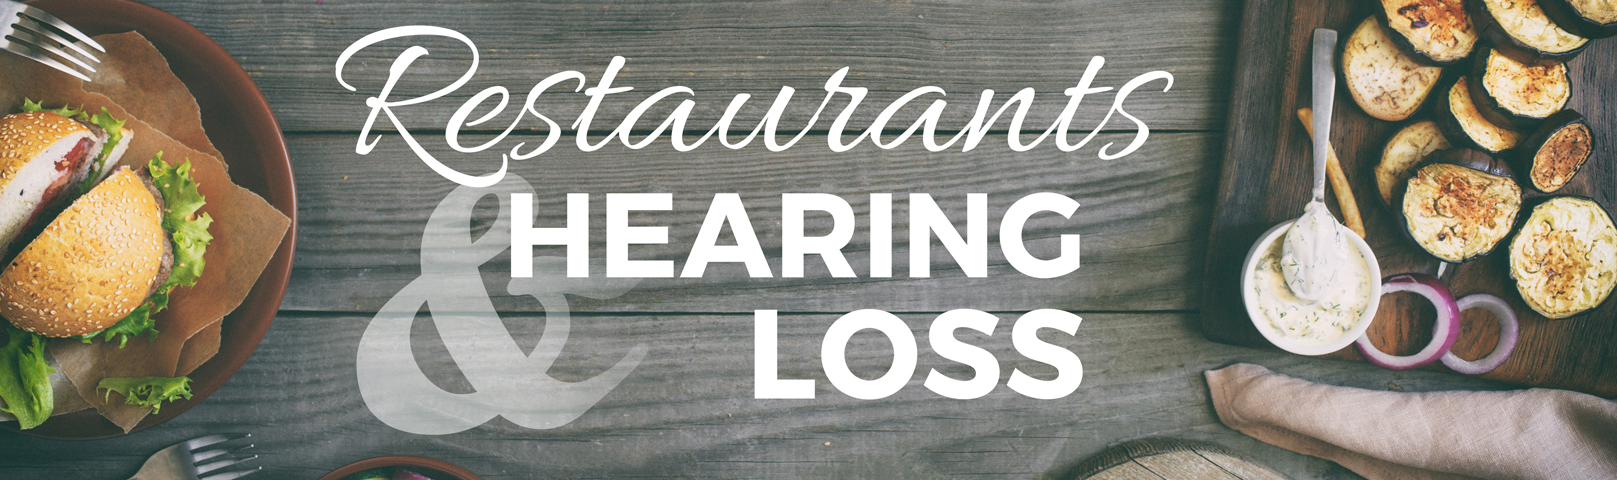 Restaurants & Hearing Loss